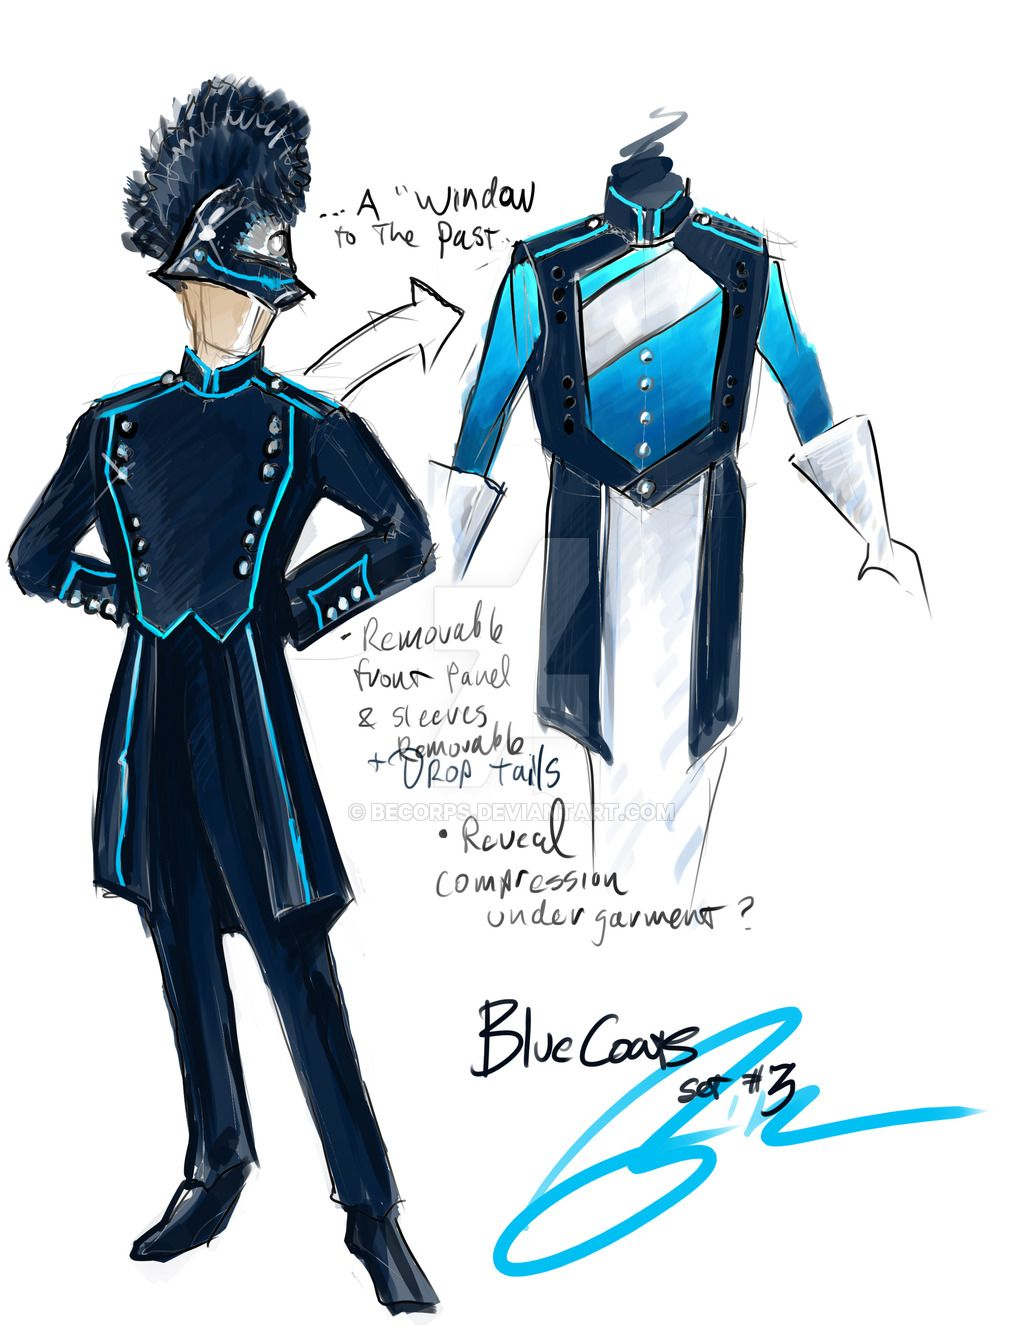 bluecoats - DeviantArt